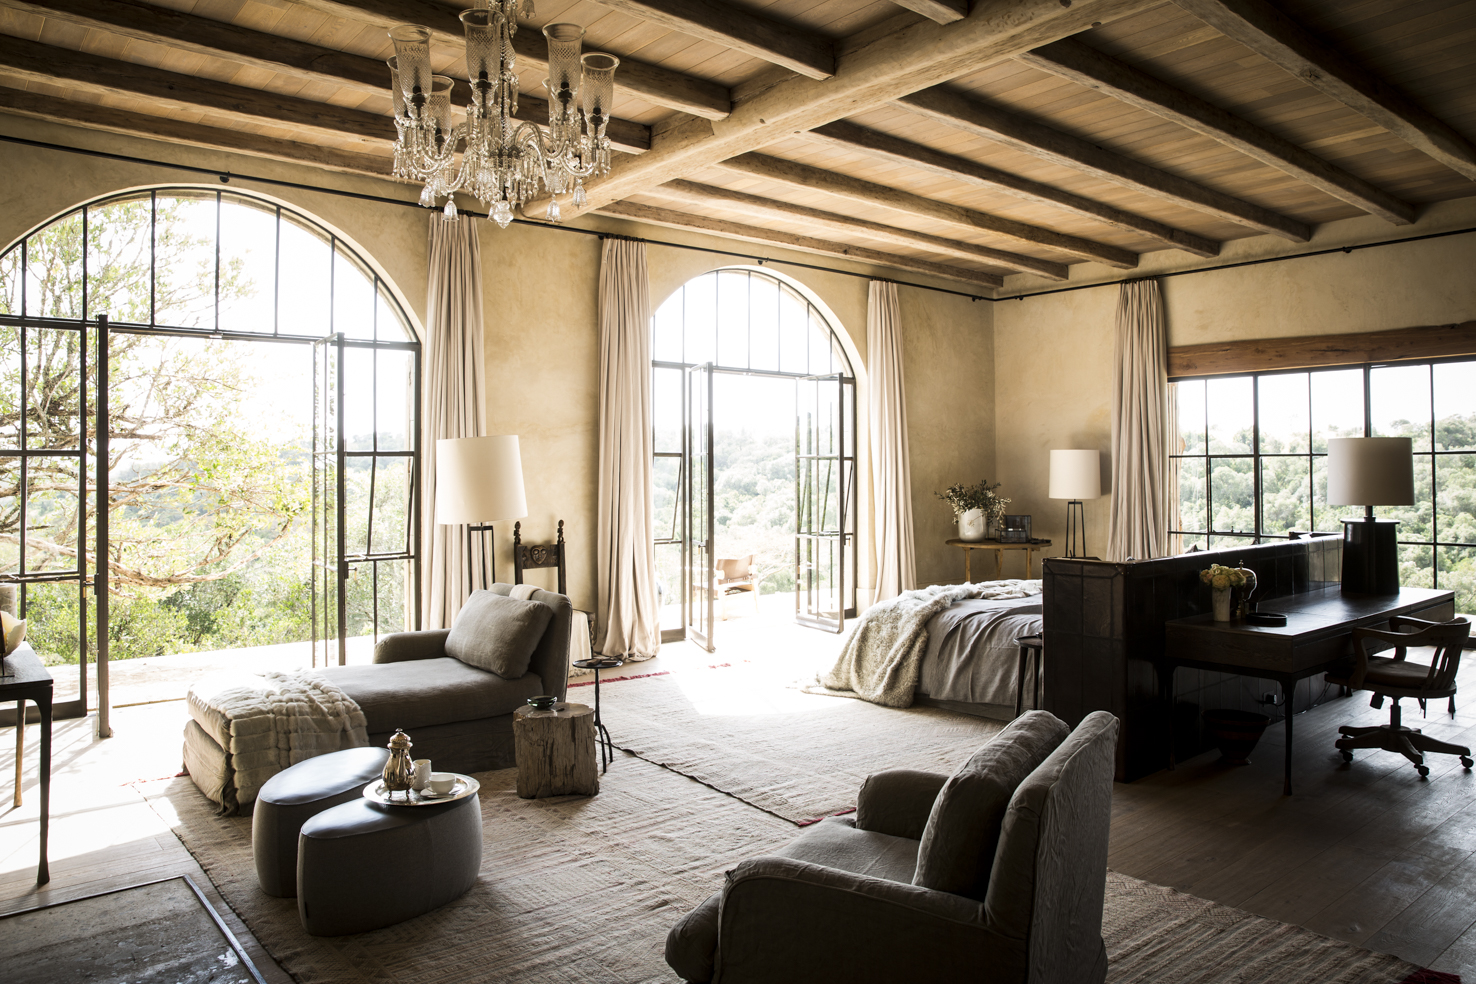 Is this the most beautiful house in africa journeys by design - Beautiful room photos ...